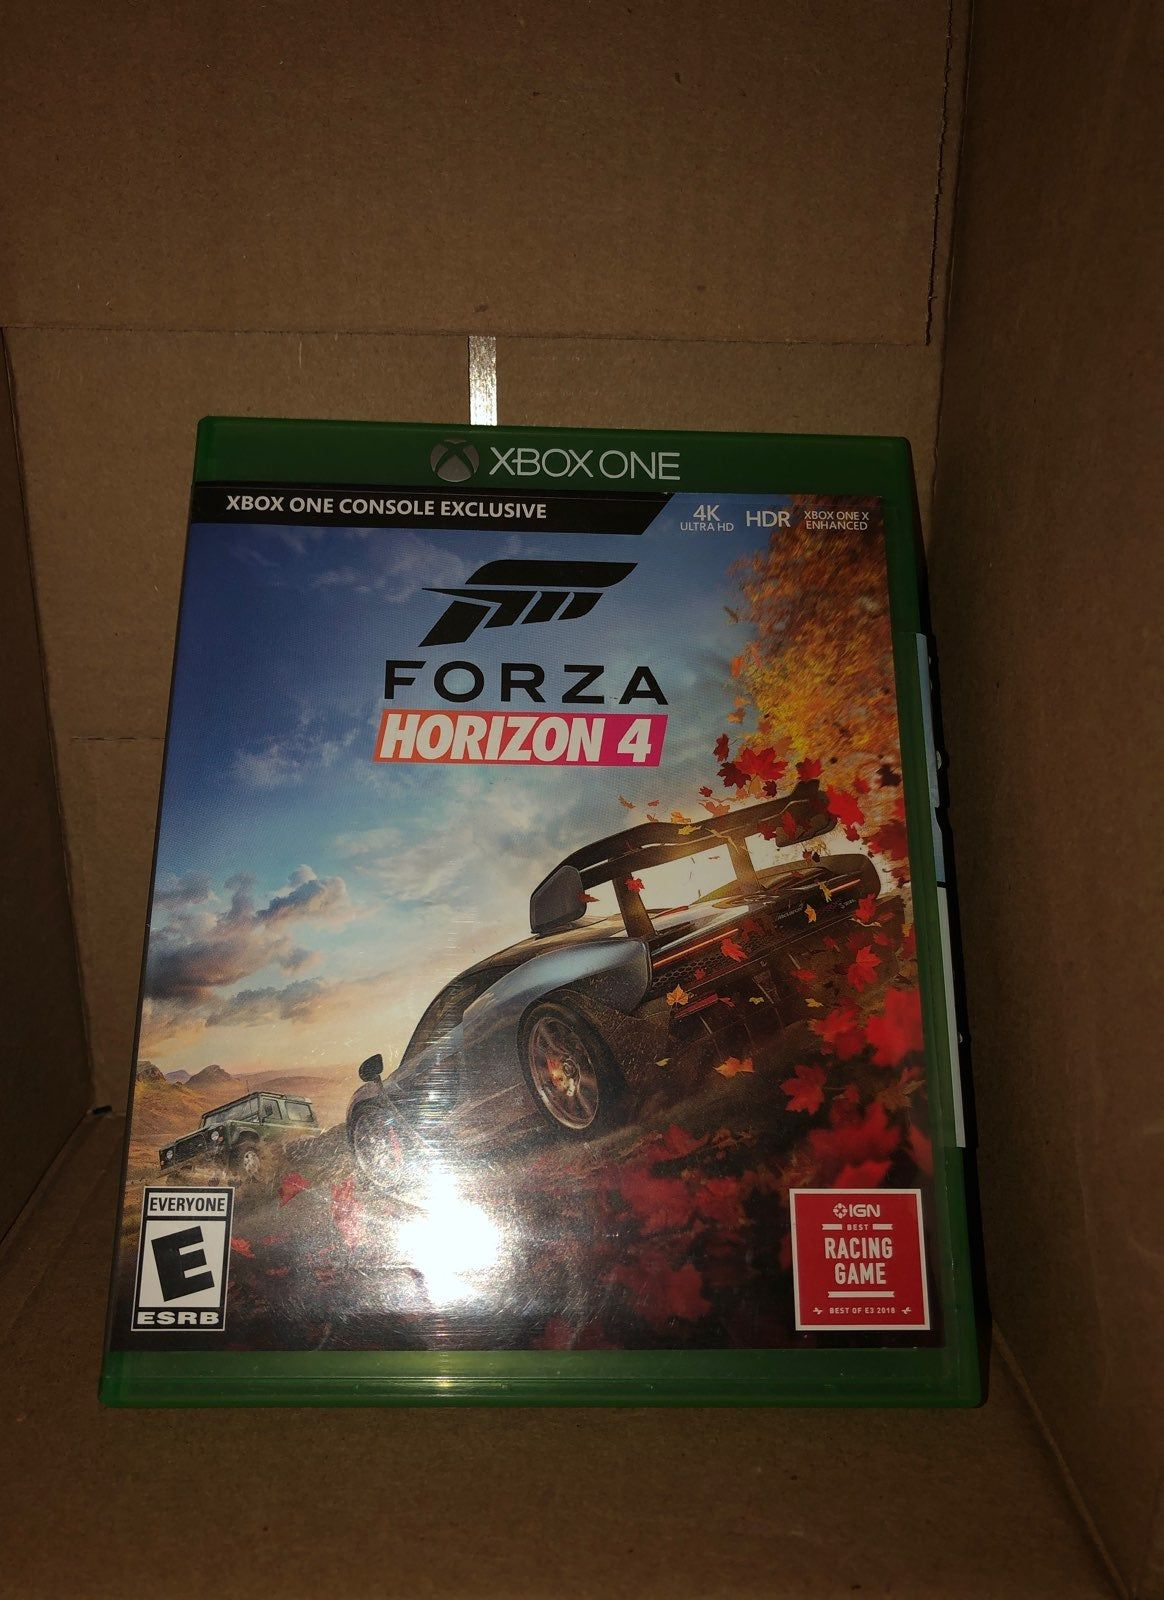 Check out my Forza Horizon 4! only played once to